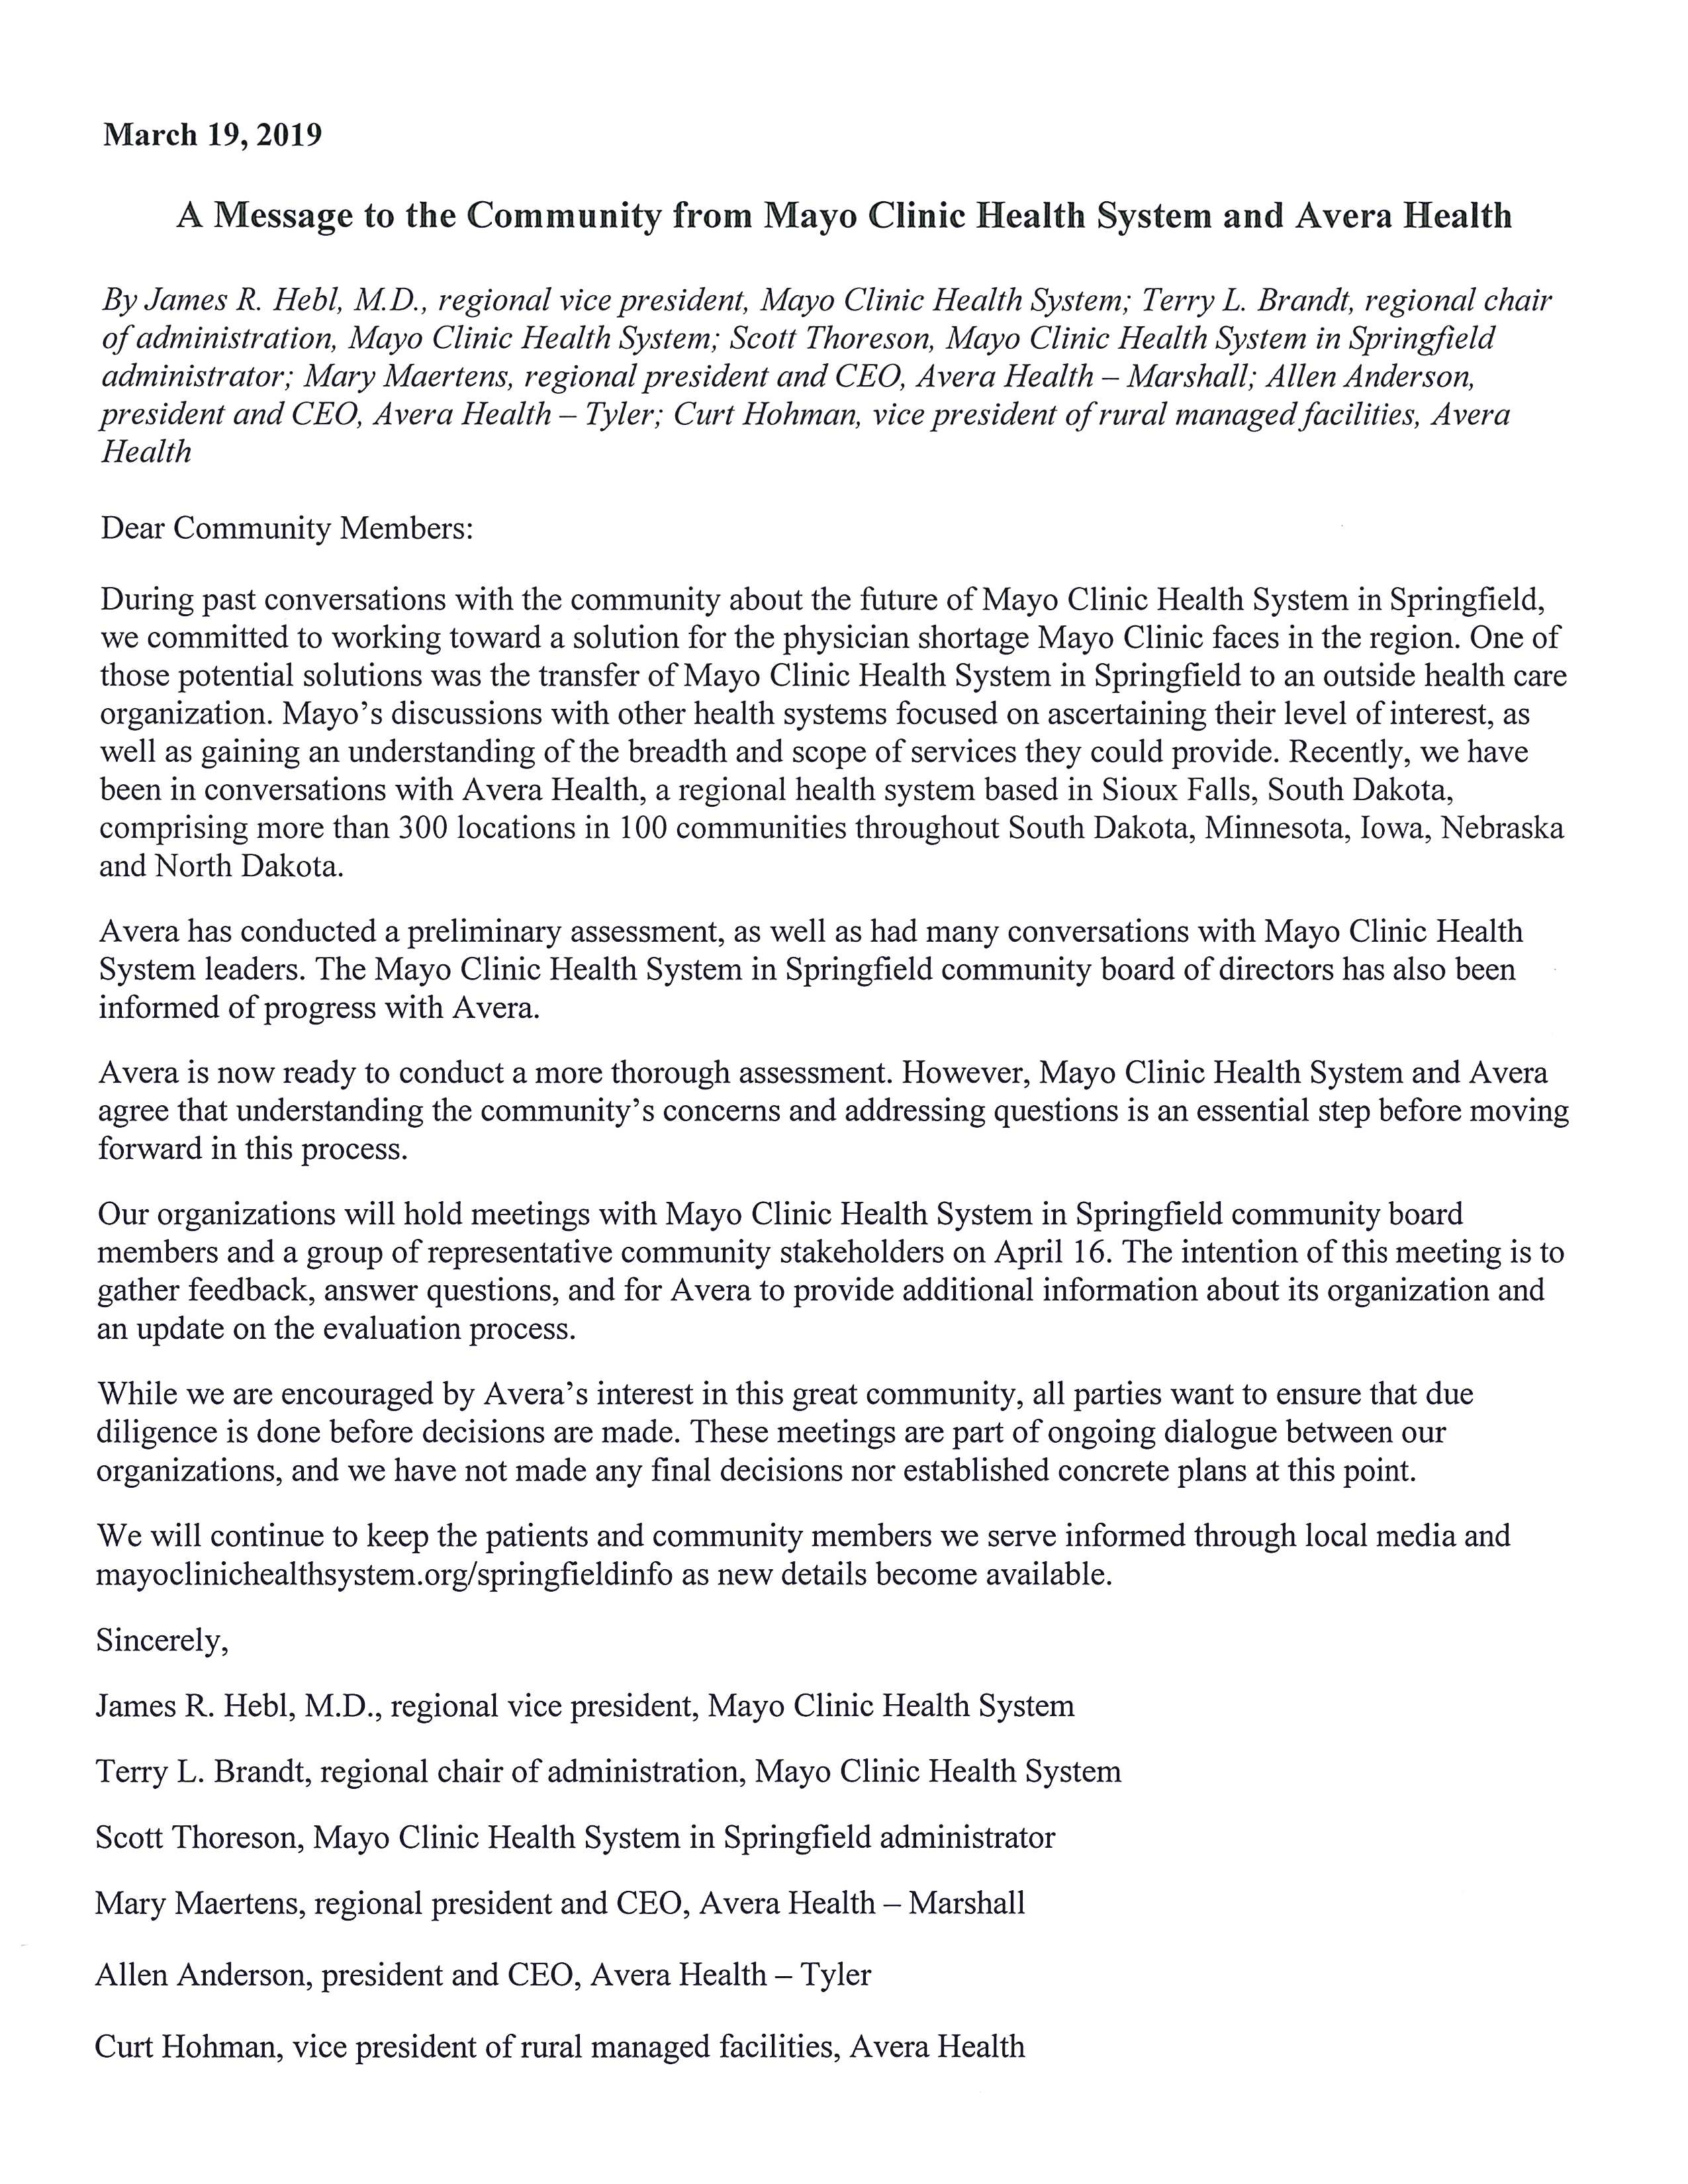 News Release - Mayo Clinic Health System-Springfield